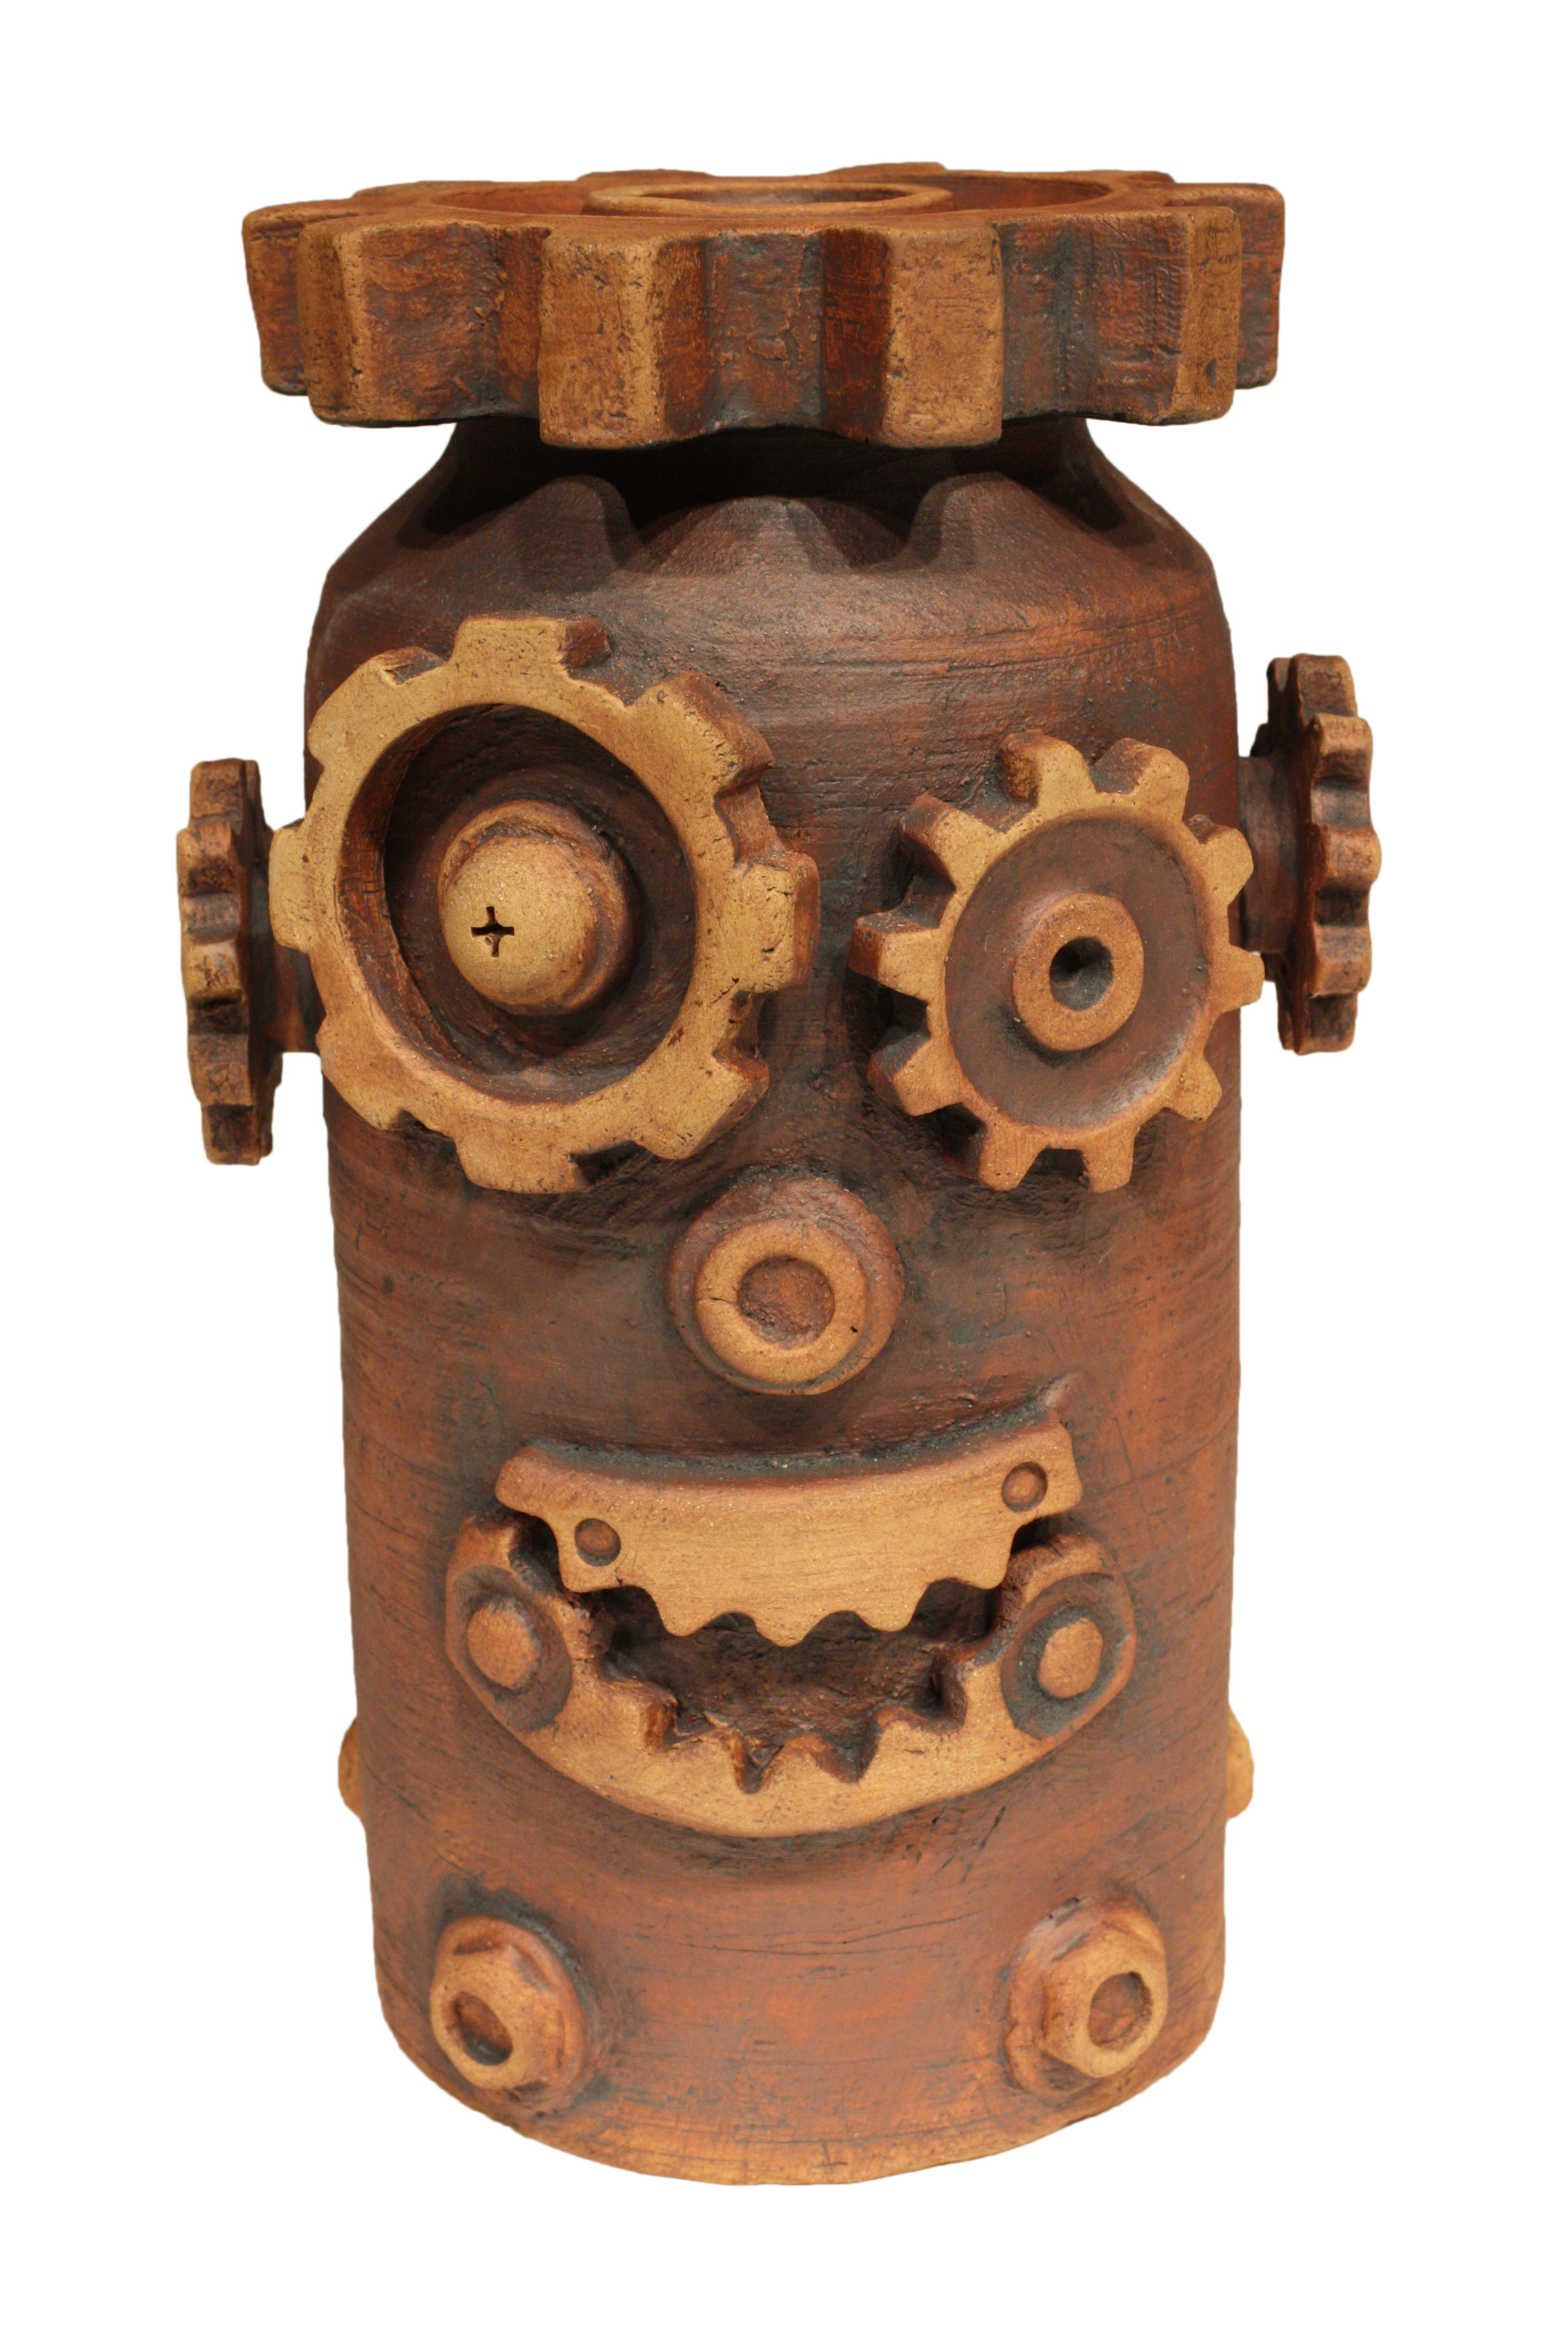 Gears on a jar forming a robotic face.